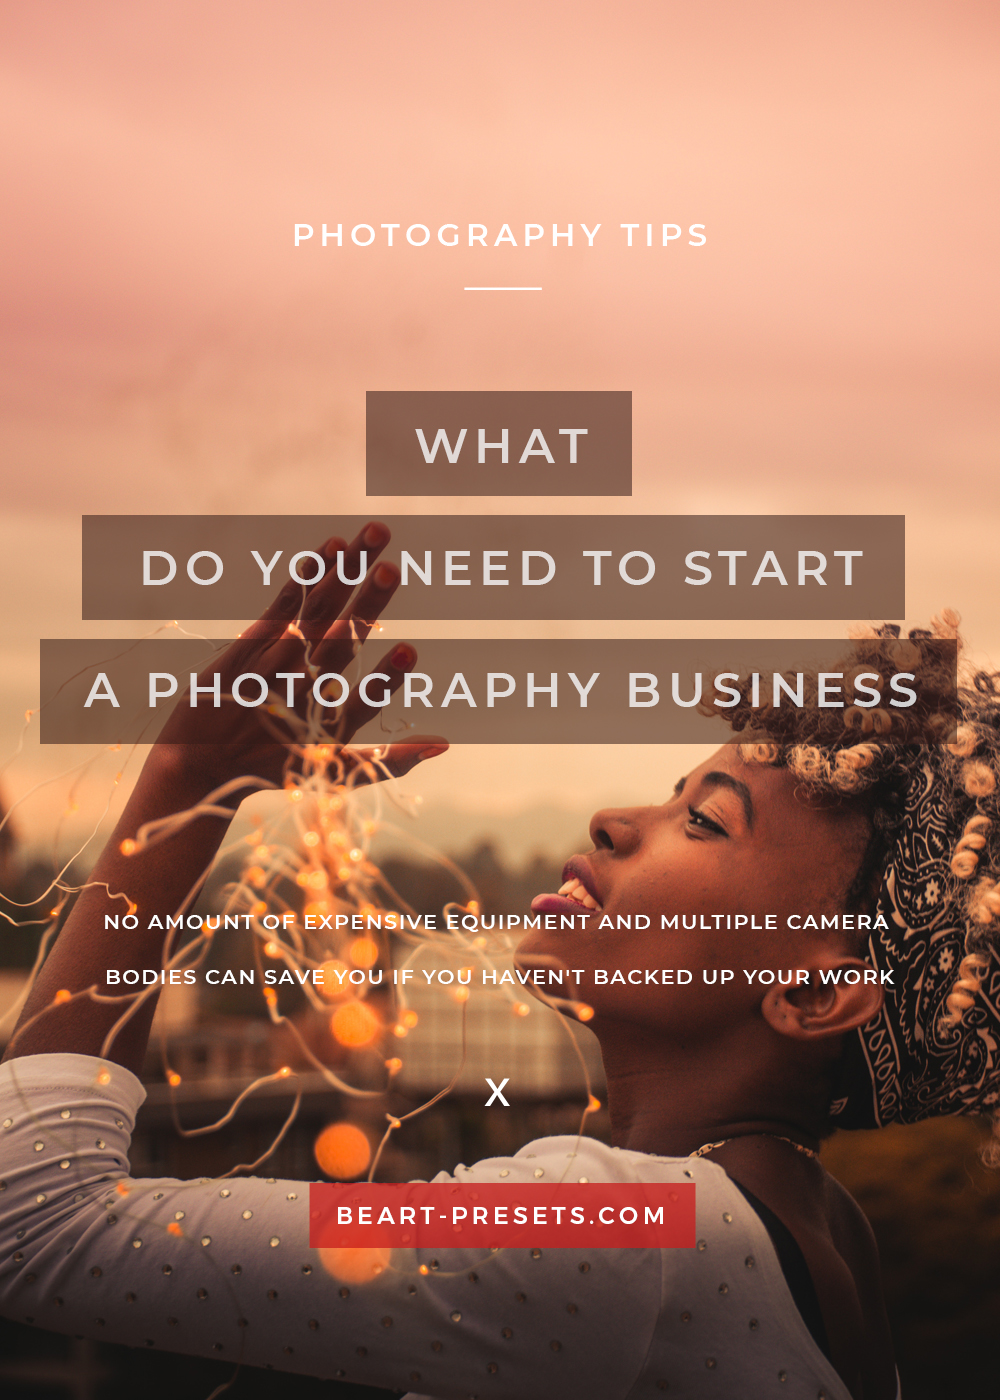 WHAT DO YOU NEED TO START A PHOTOGRAPHY BUSINESS